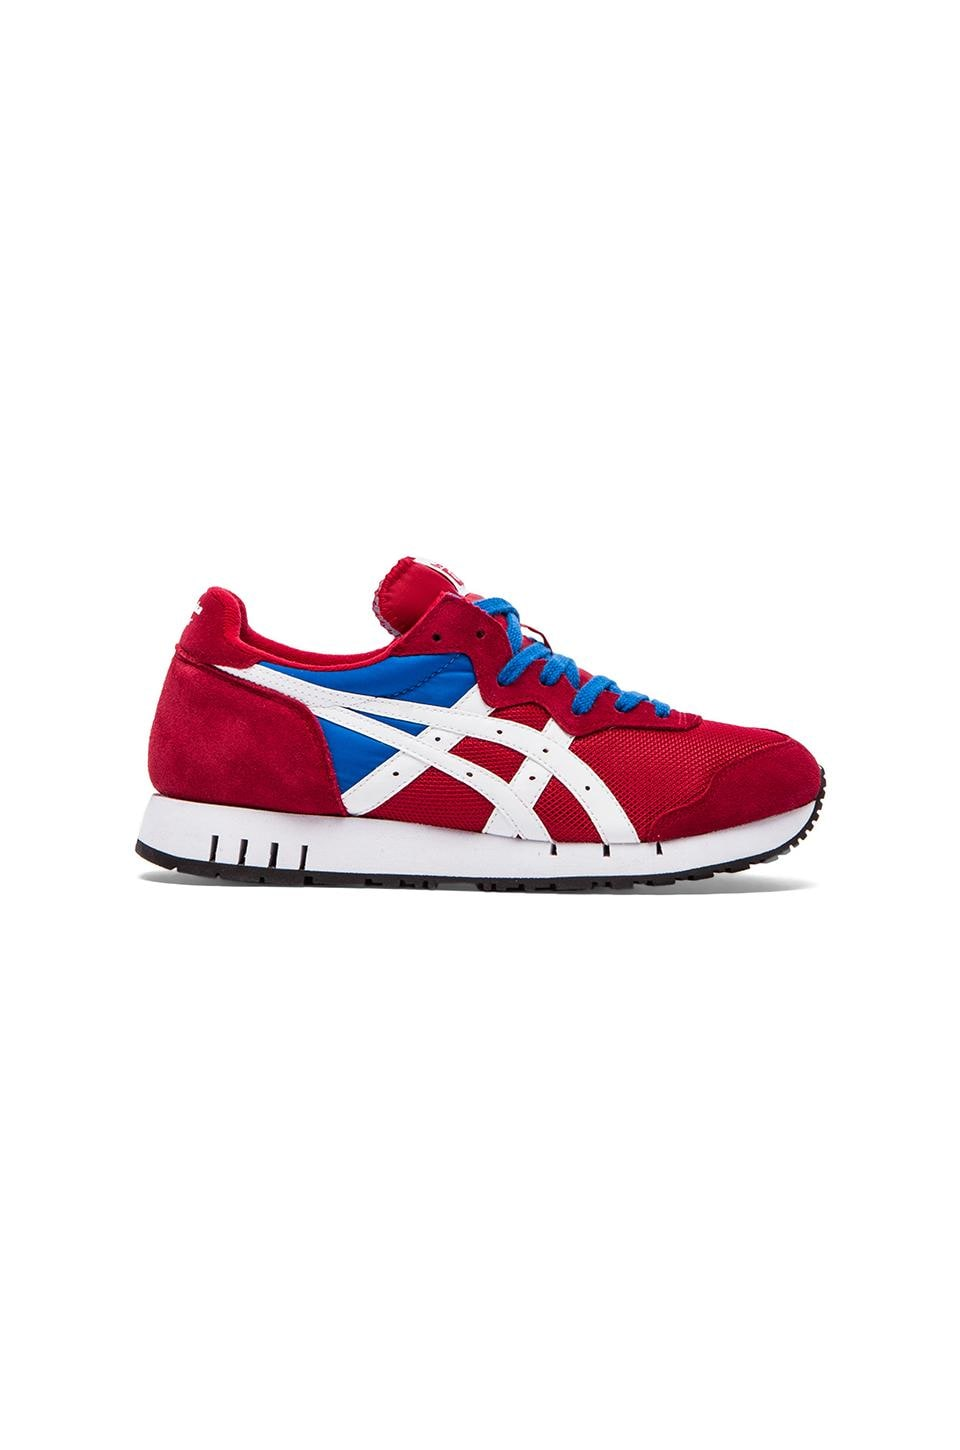 Onitsuka Tiger X-Caliber in Red & White